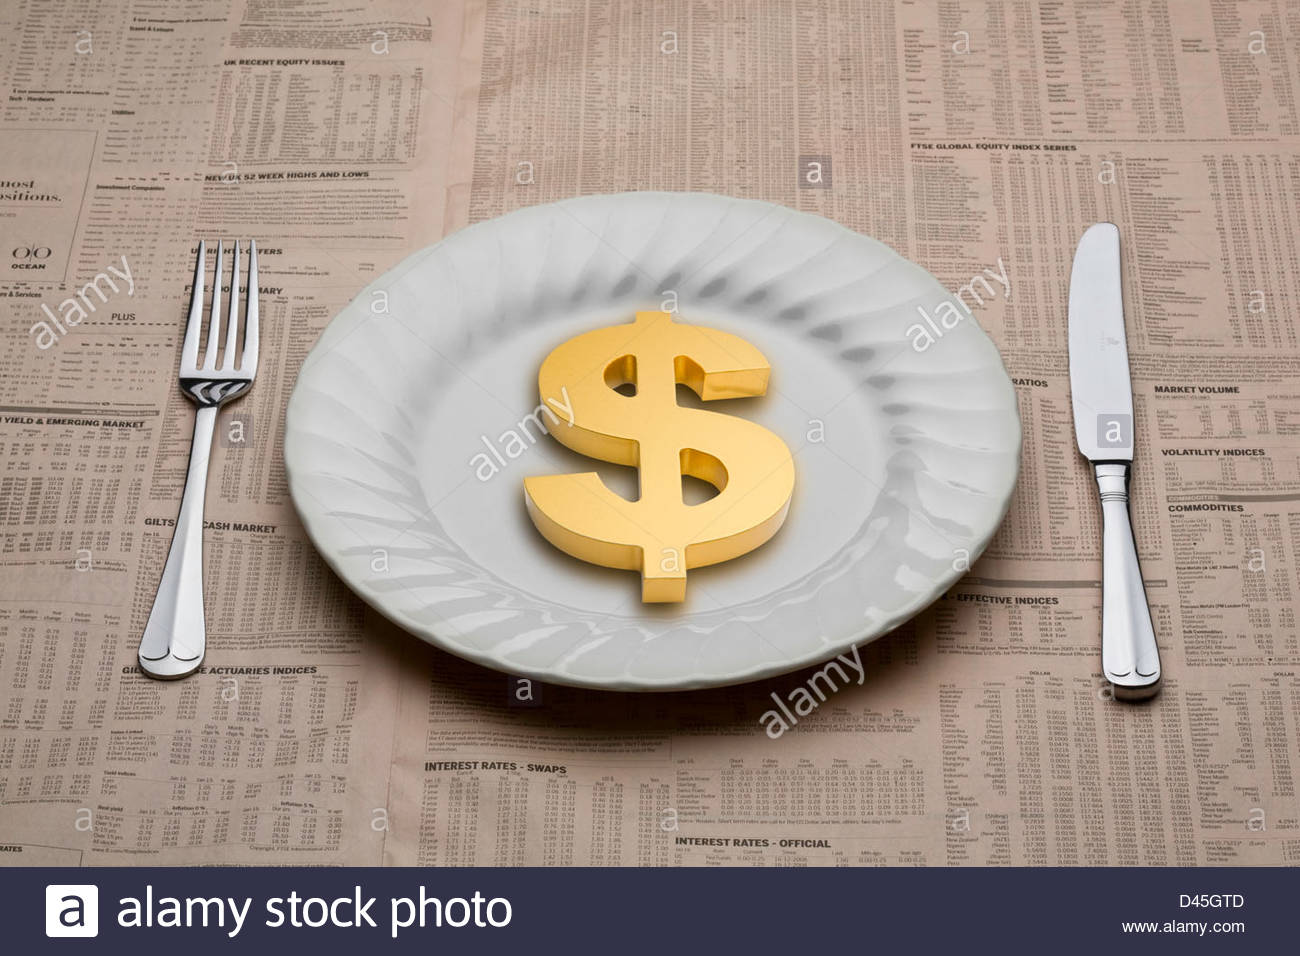 Dollar symbol on a dinner plate with a knife and fork ready to eat for lunch on a table cloth of a financial newspaper - Stock Image